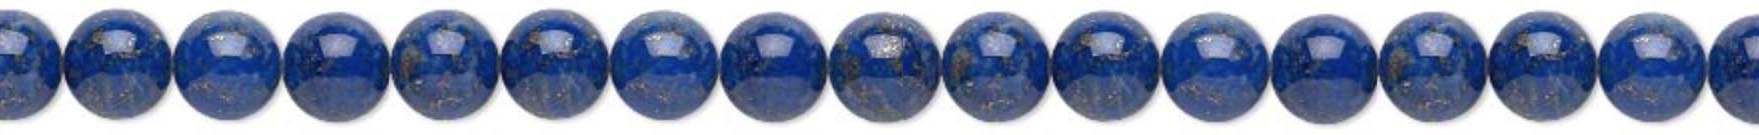 6mm Lapis Lazuli meaning - Enlightenment - Physic Abilities - Power - Serenity - Reverse Curses - Chakras - Opens Third Eye & Balances Throat